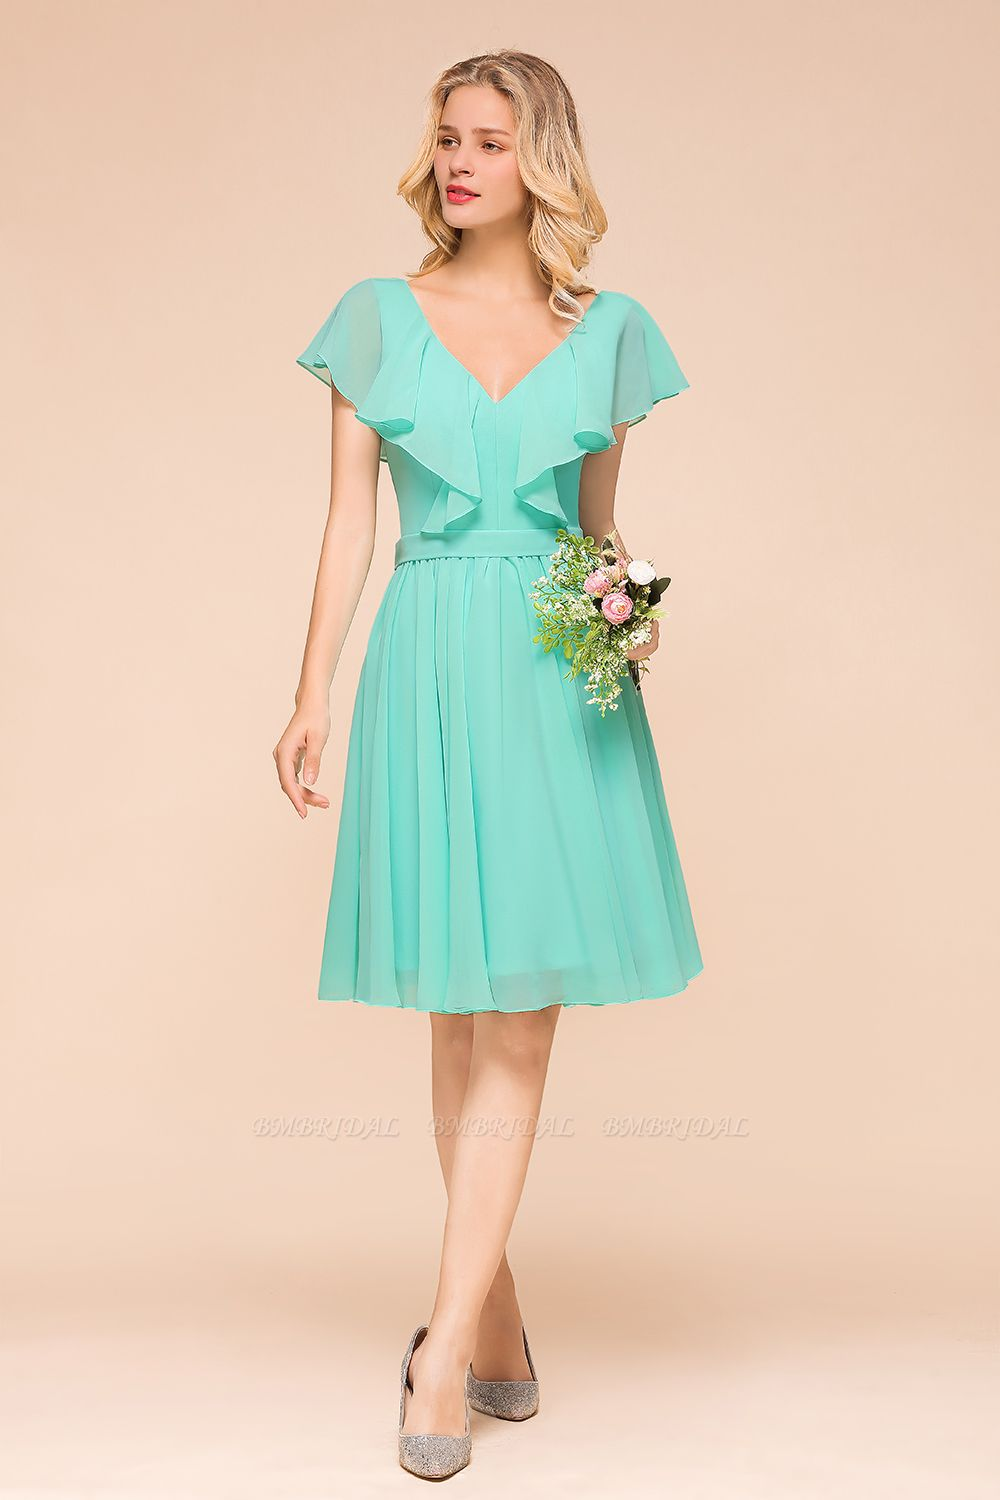 Chic V-Neck Ruffle Chiffon Short Affordable Bridesmaid Dresses Online